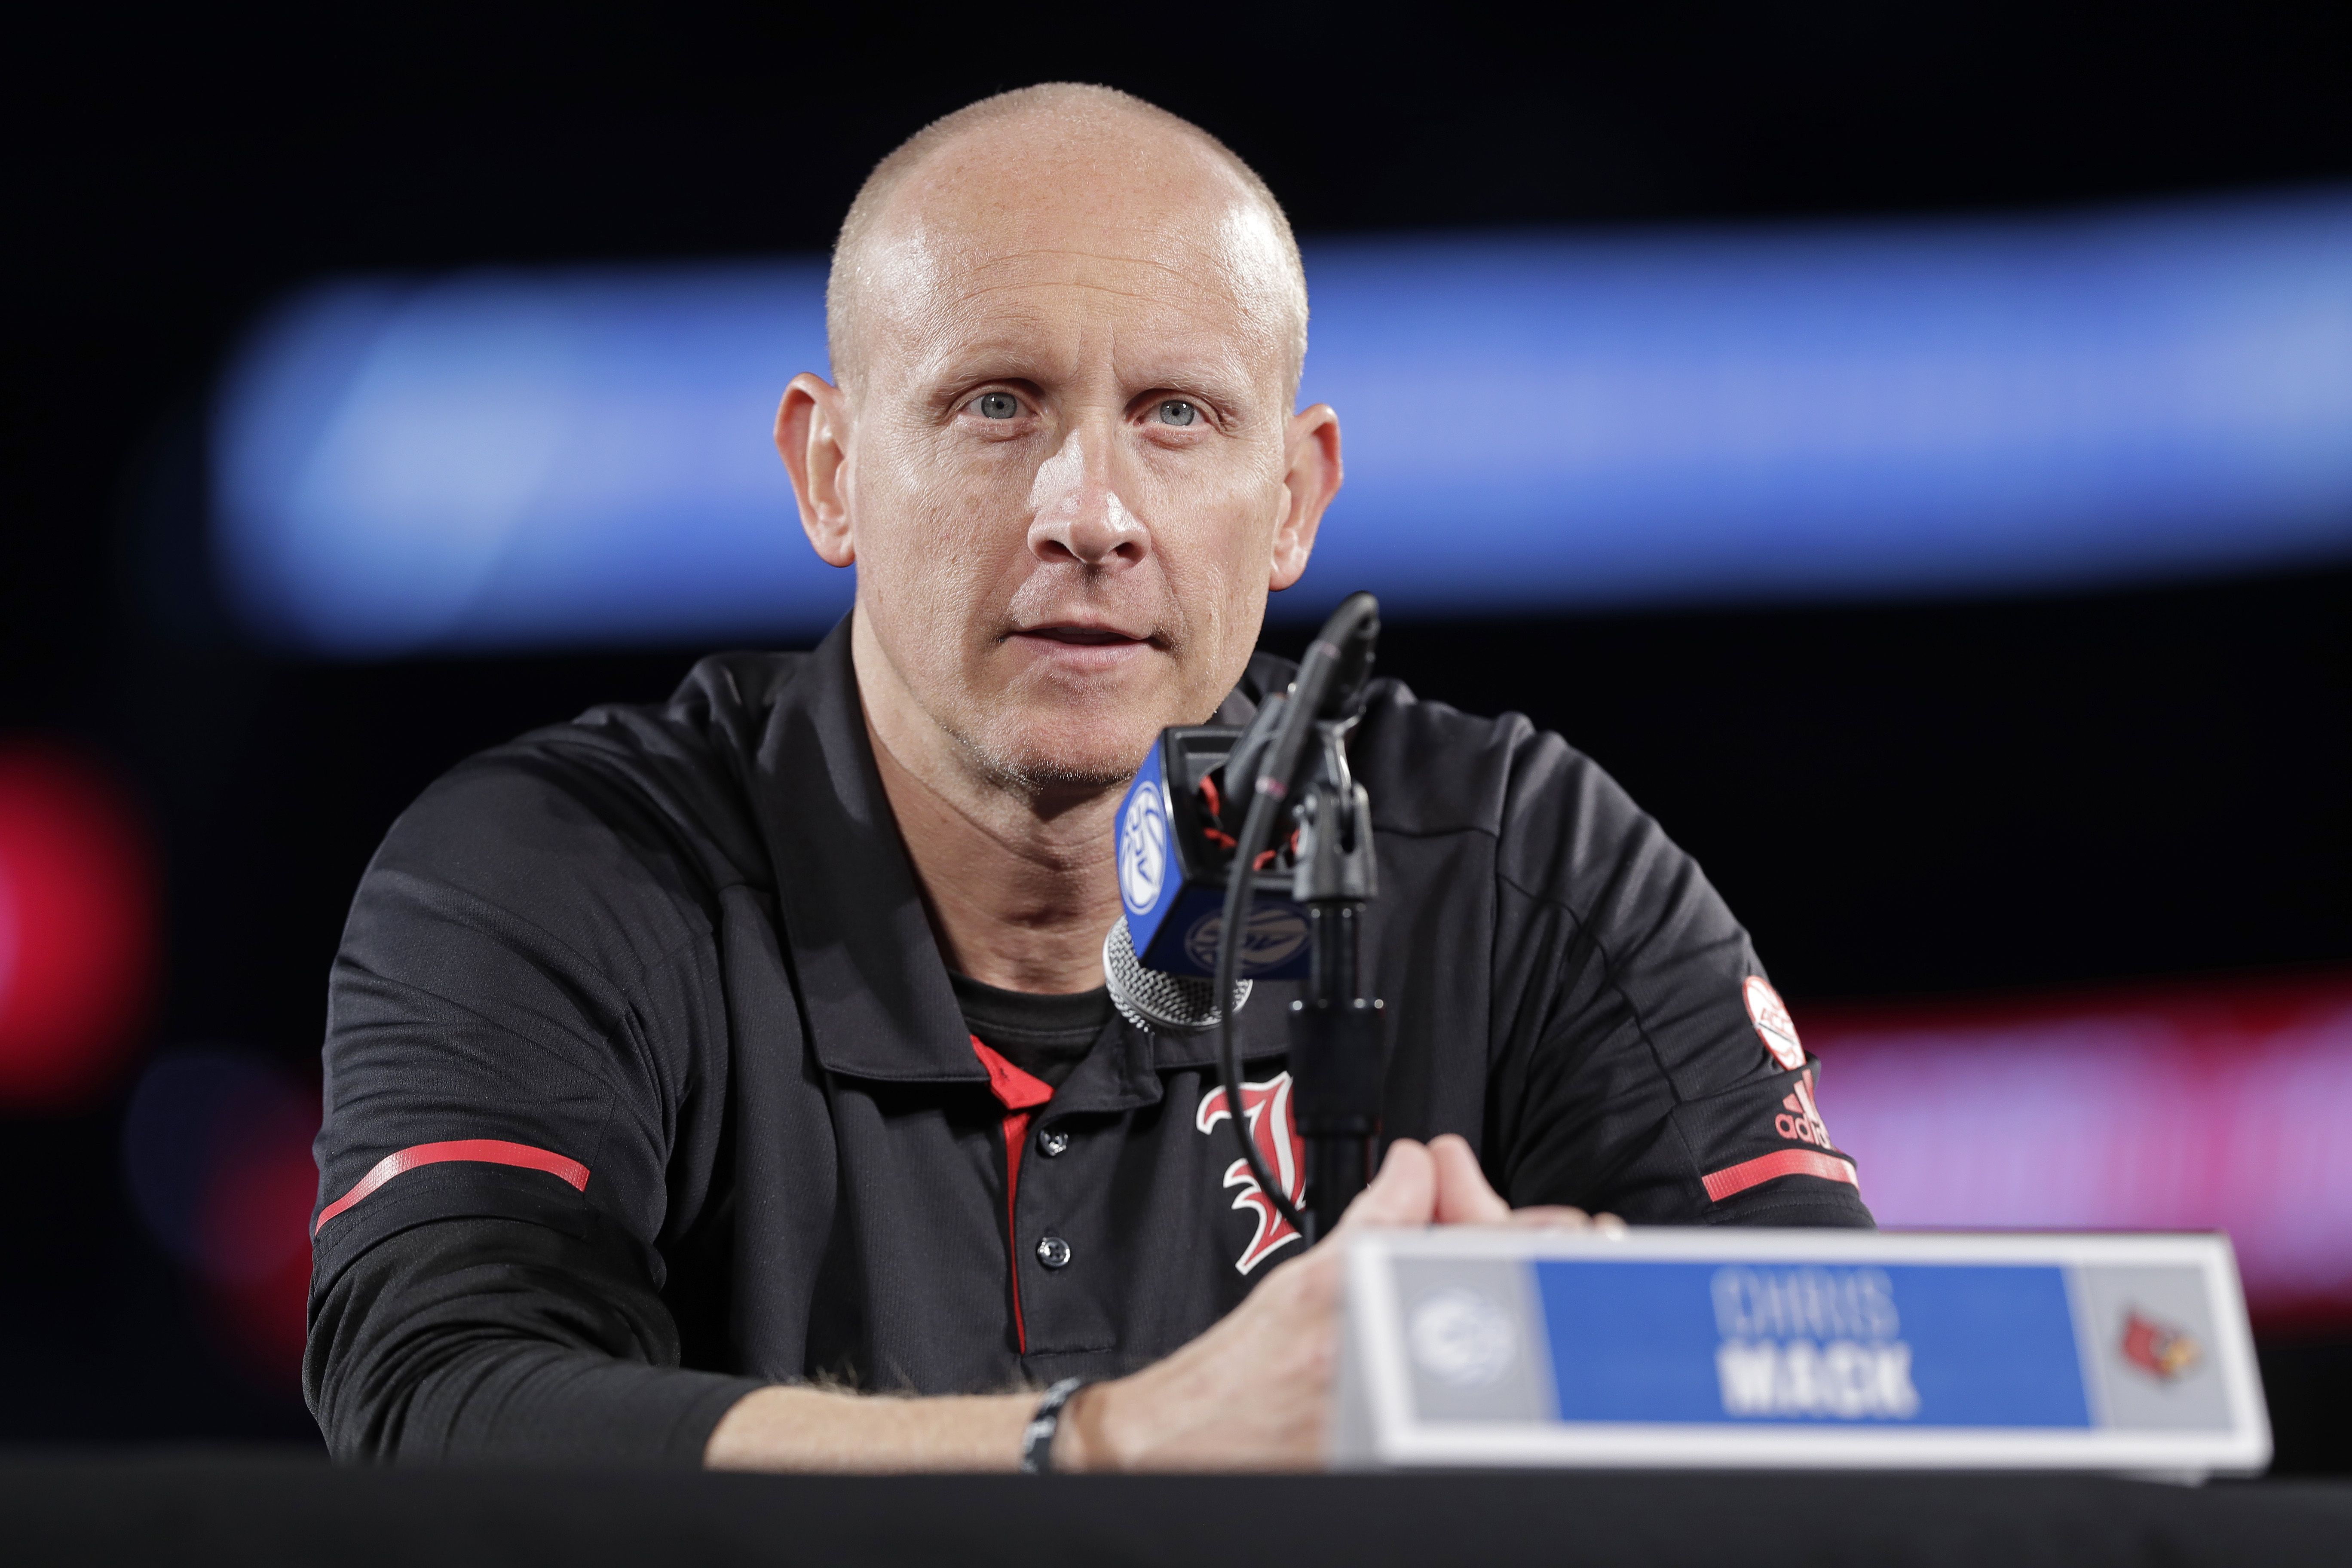 Louisville counting on Mack to guide team back from scandals